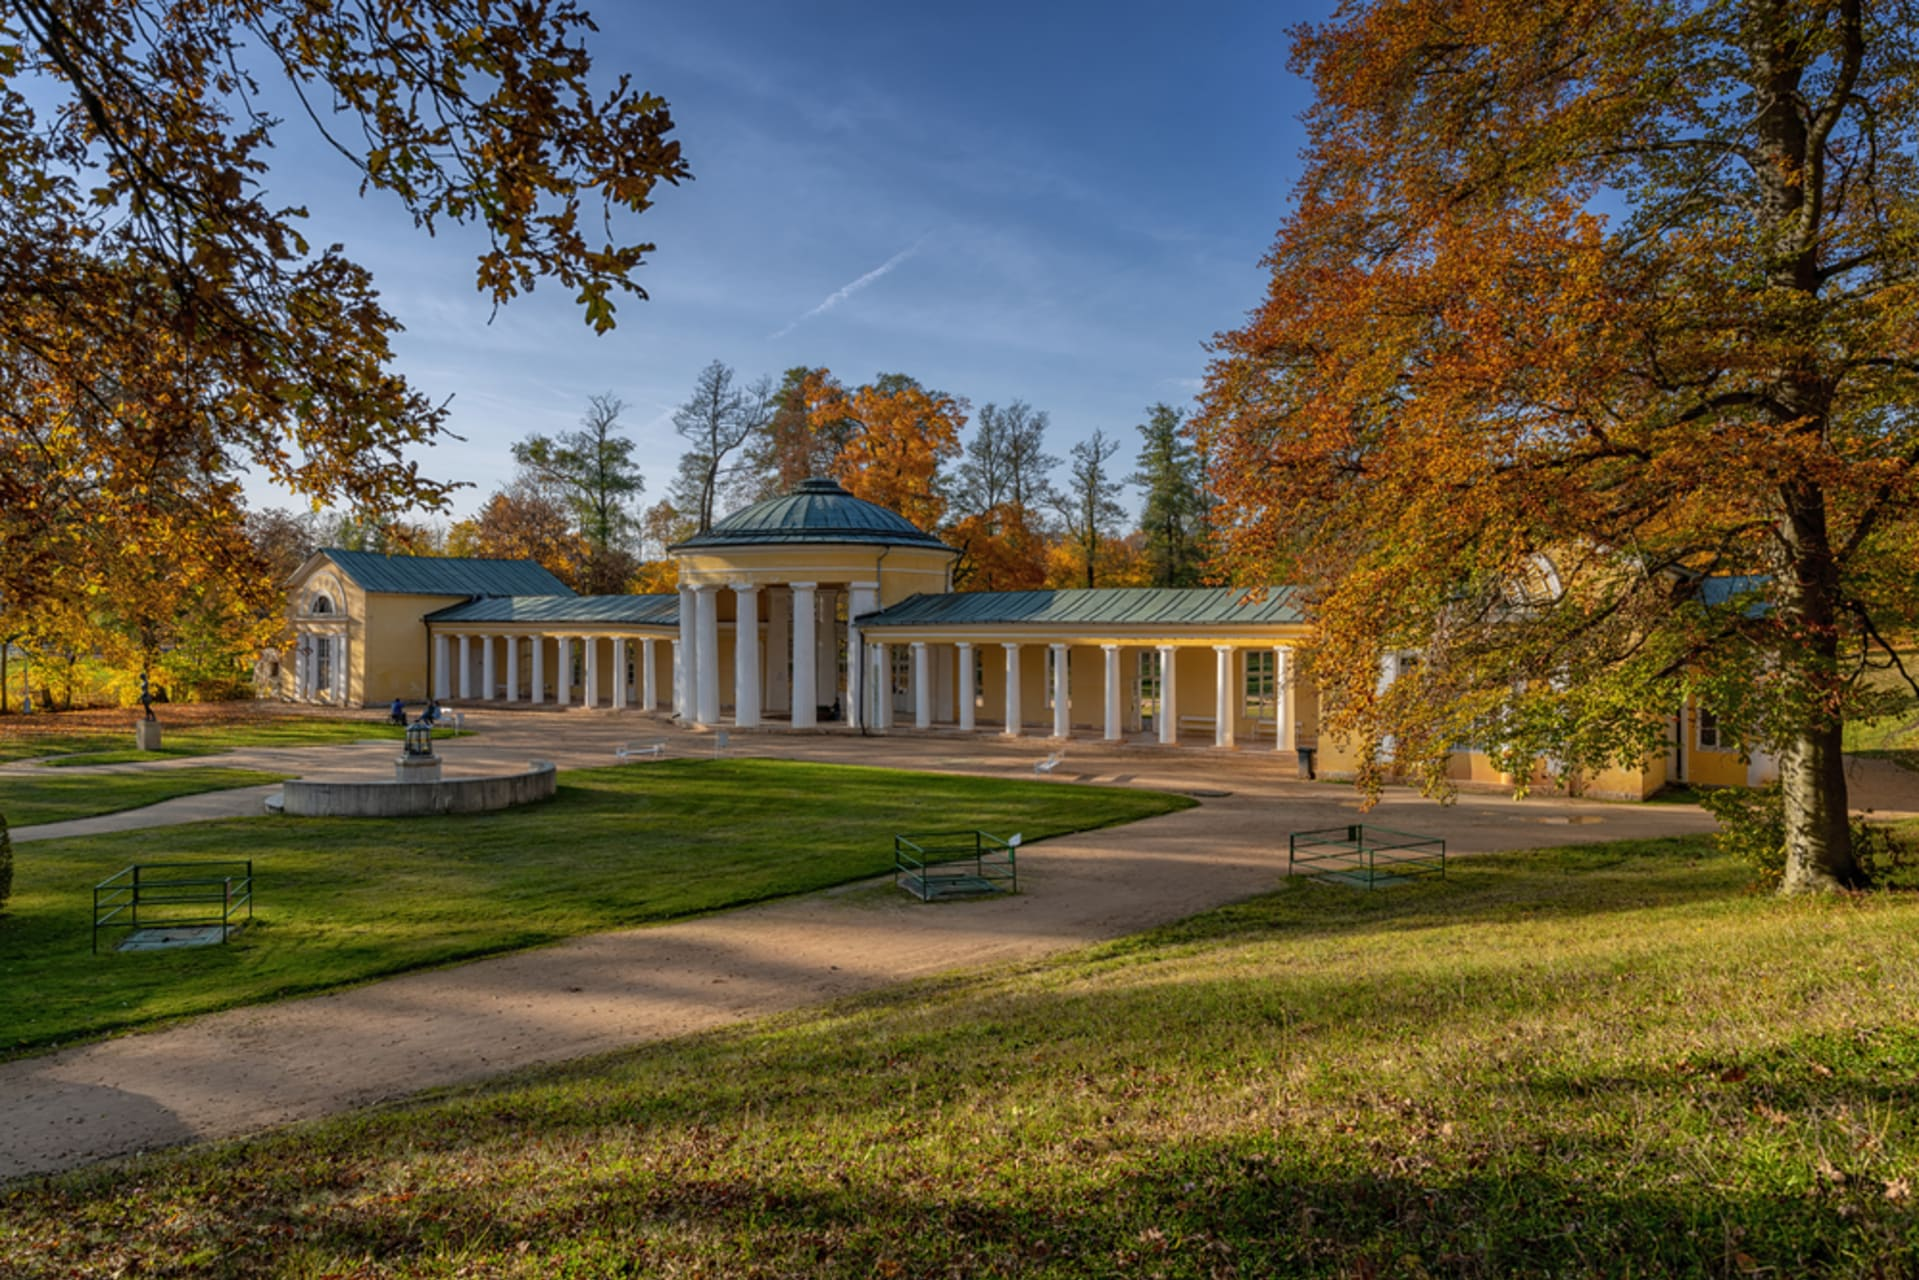 Marianske Lazne -  Marienbad , spa in the middle of the woods